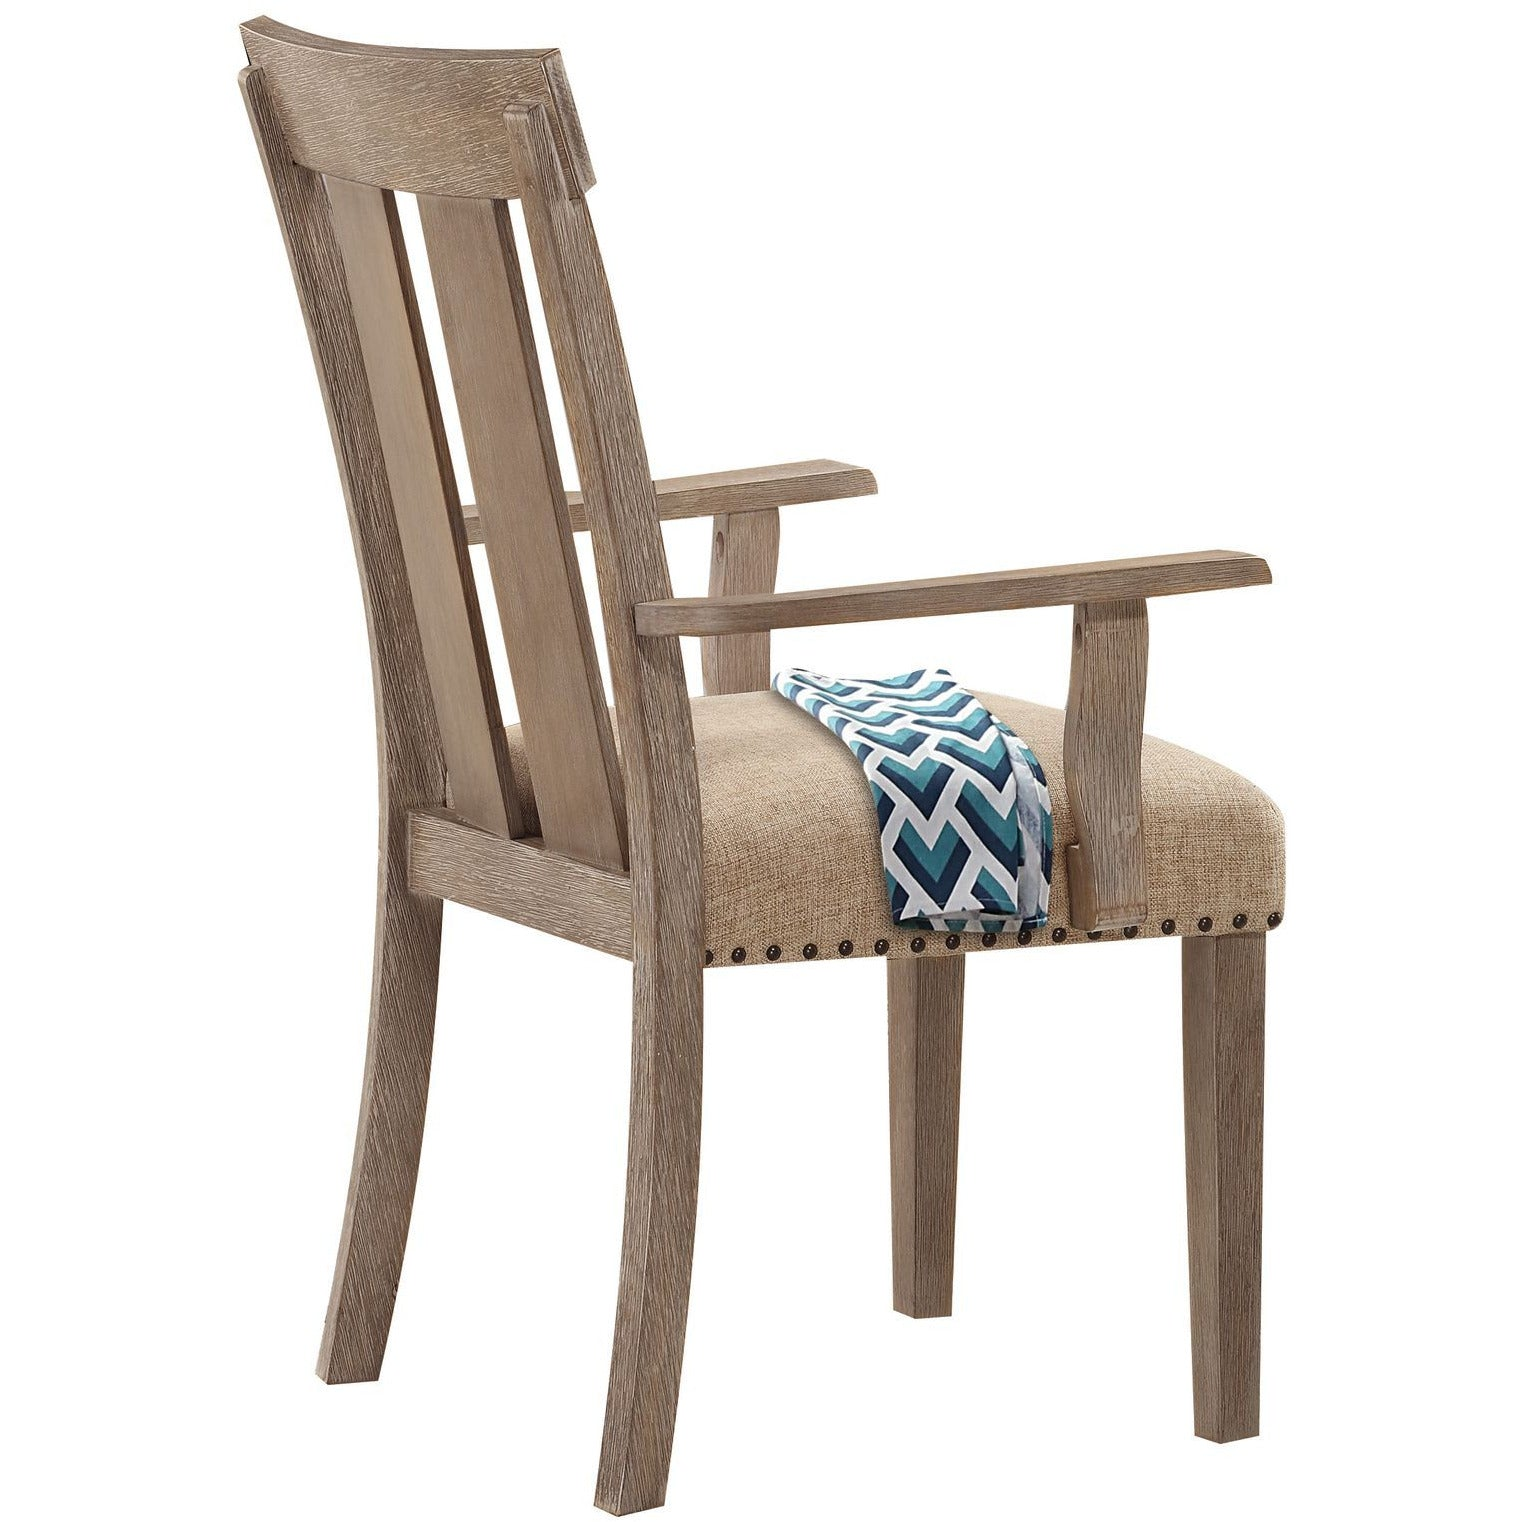 Dim Gray Set Of 2 - Nathaniel Arm Chair Fabric & Maple BH62333